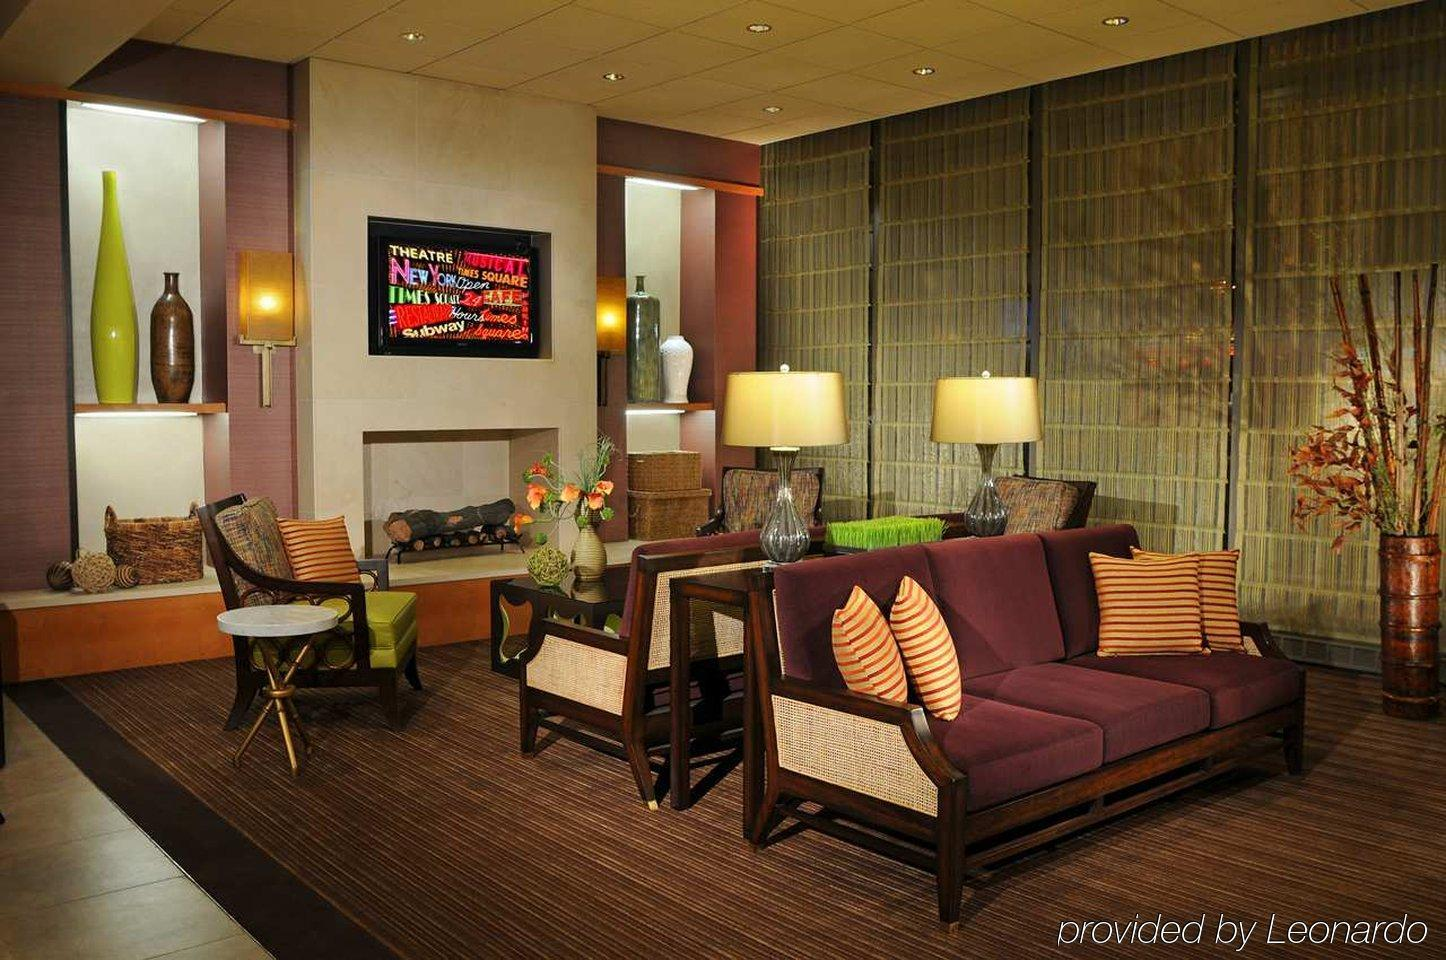 HILTON GARDEN INN TIMES SQUARE, NEW YORK ***